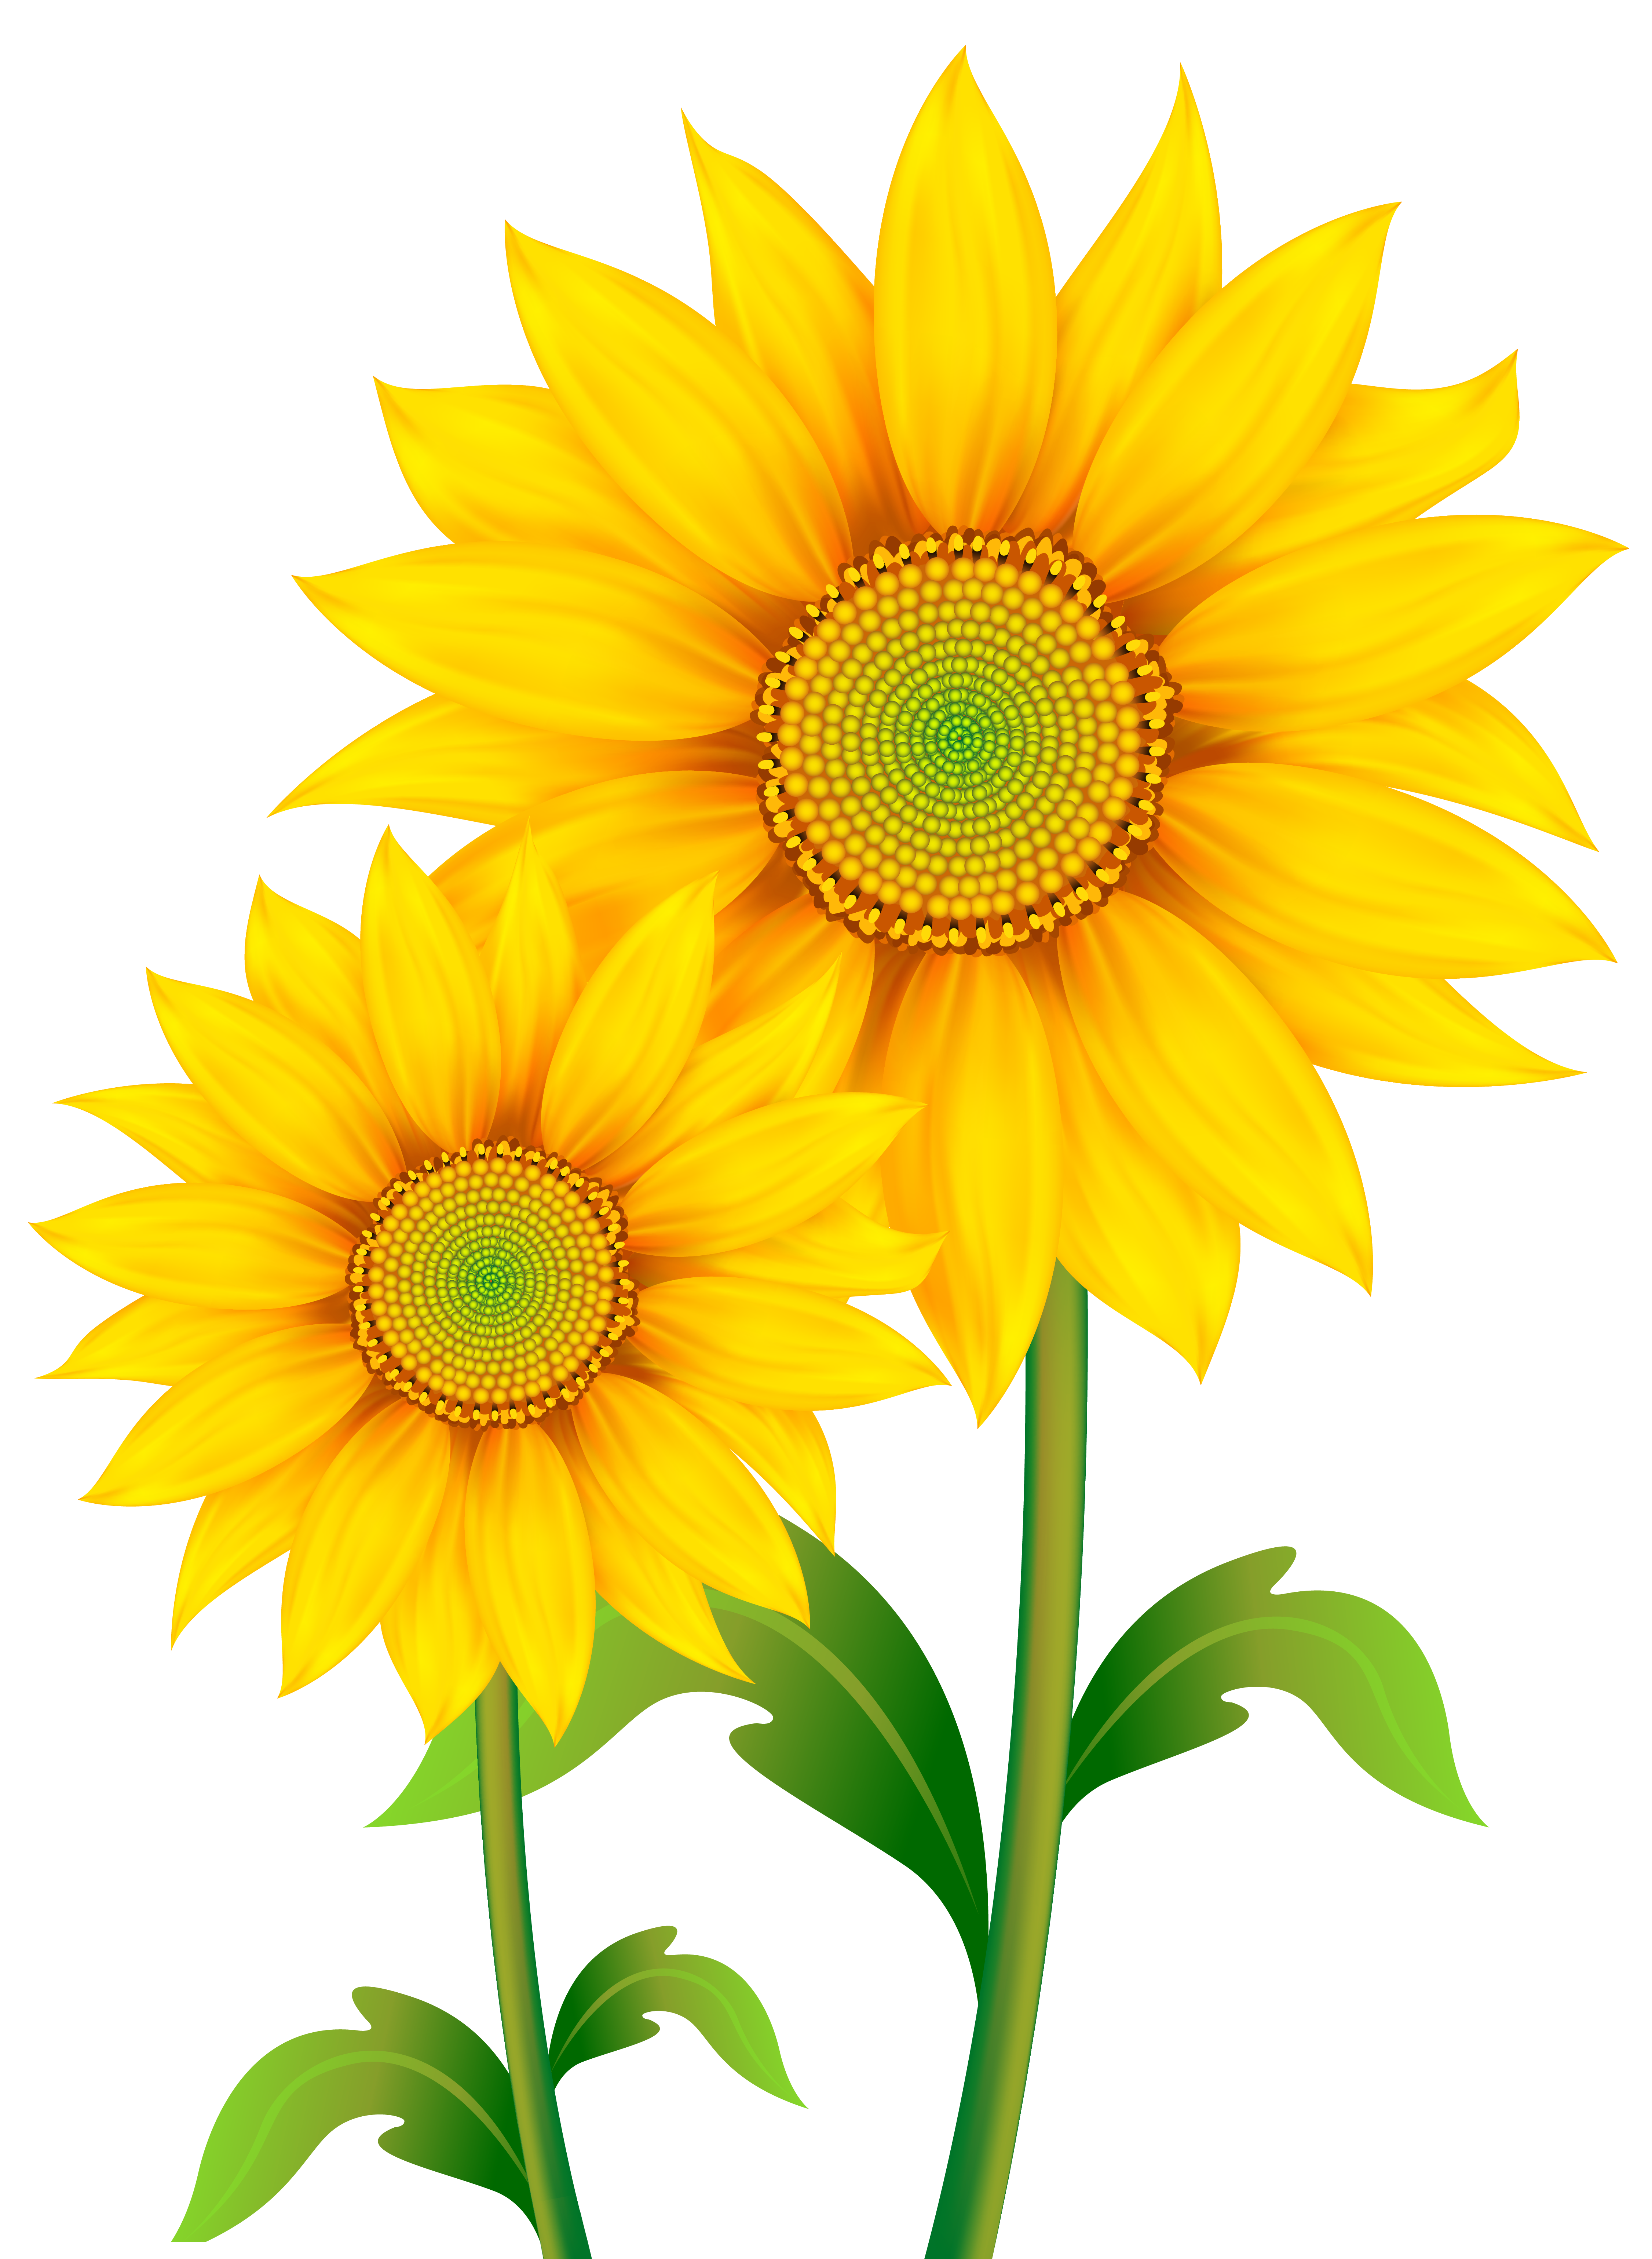 Sunflower border png. Transparent sunflowers clipart image